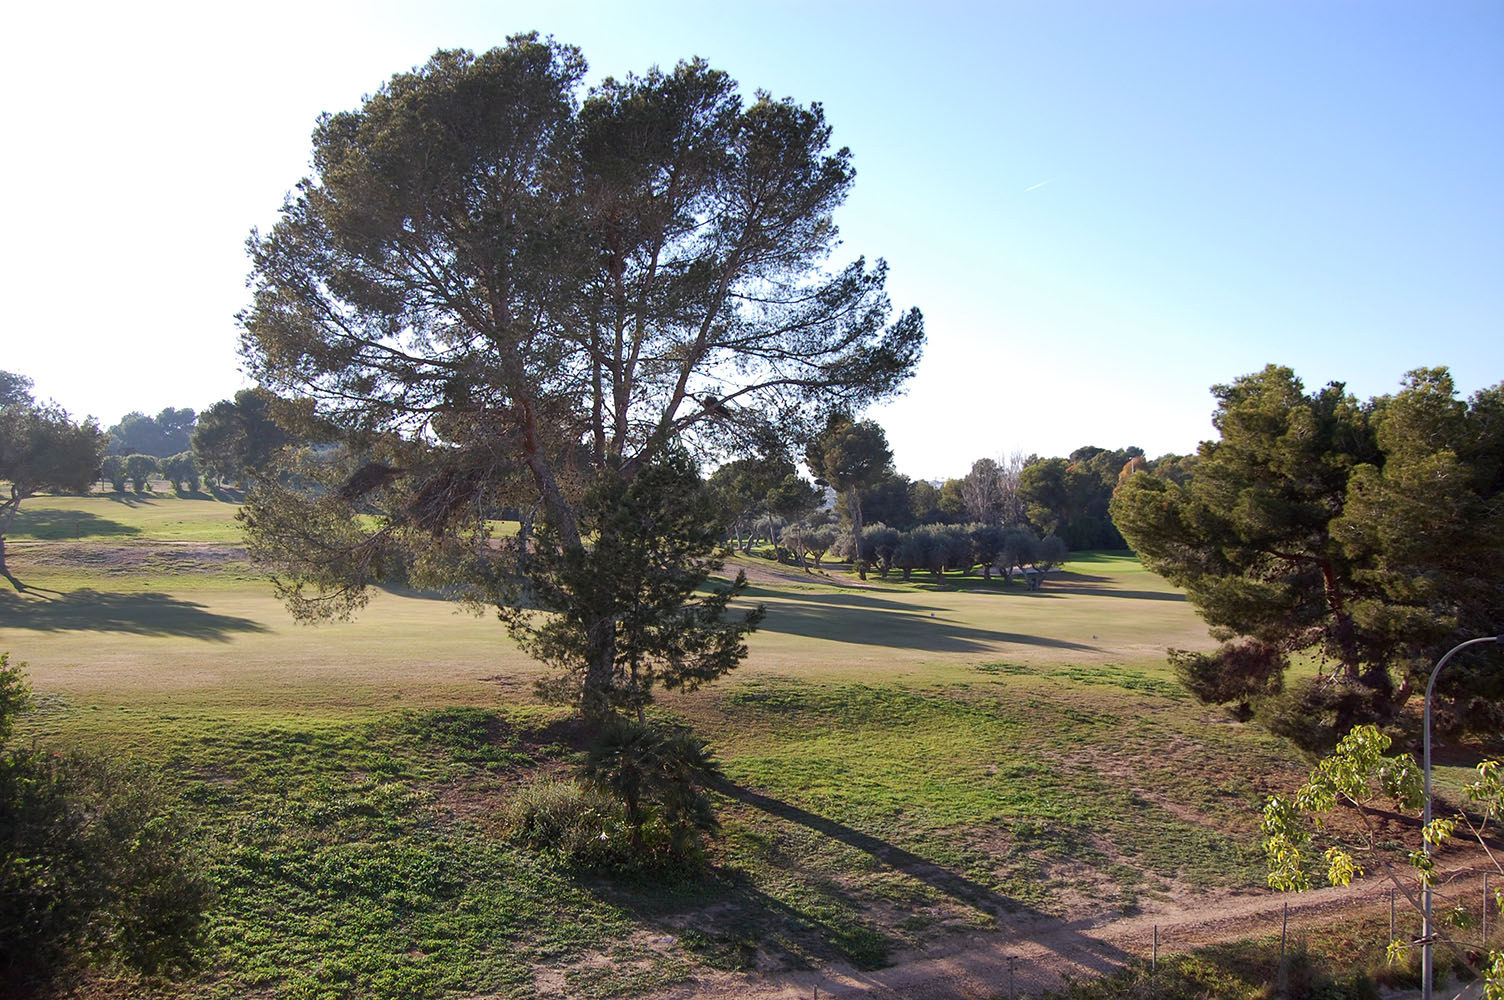 ITSH Property Views of the 1st hole of the Villamartin Golf course 10